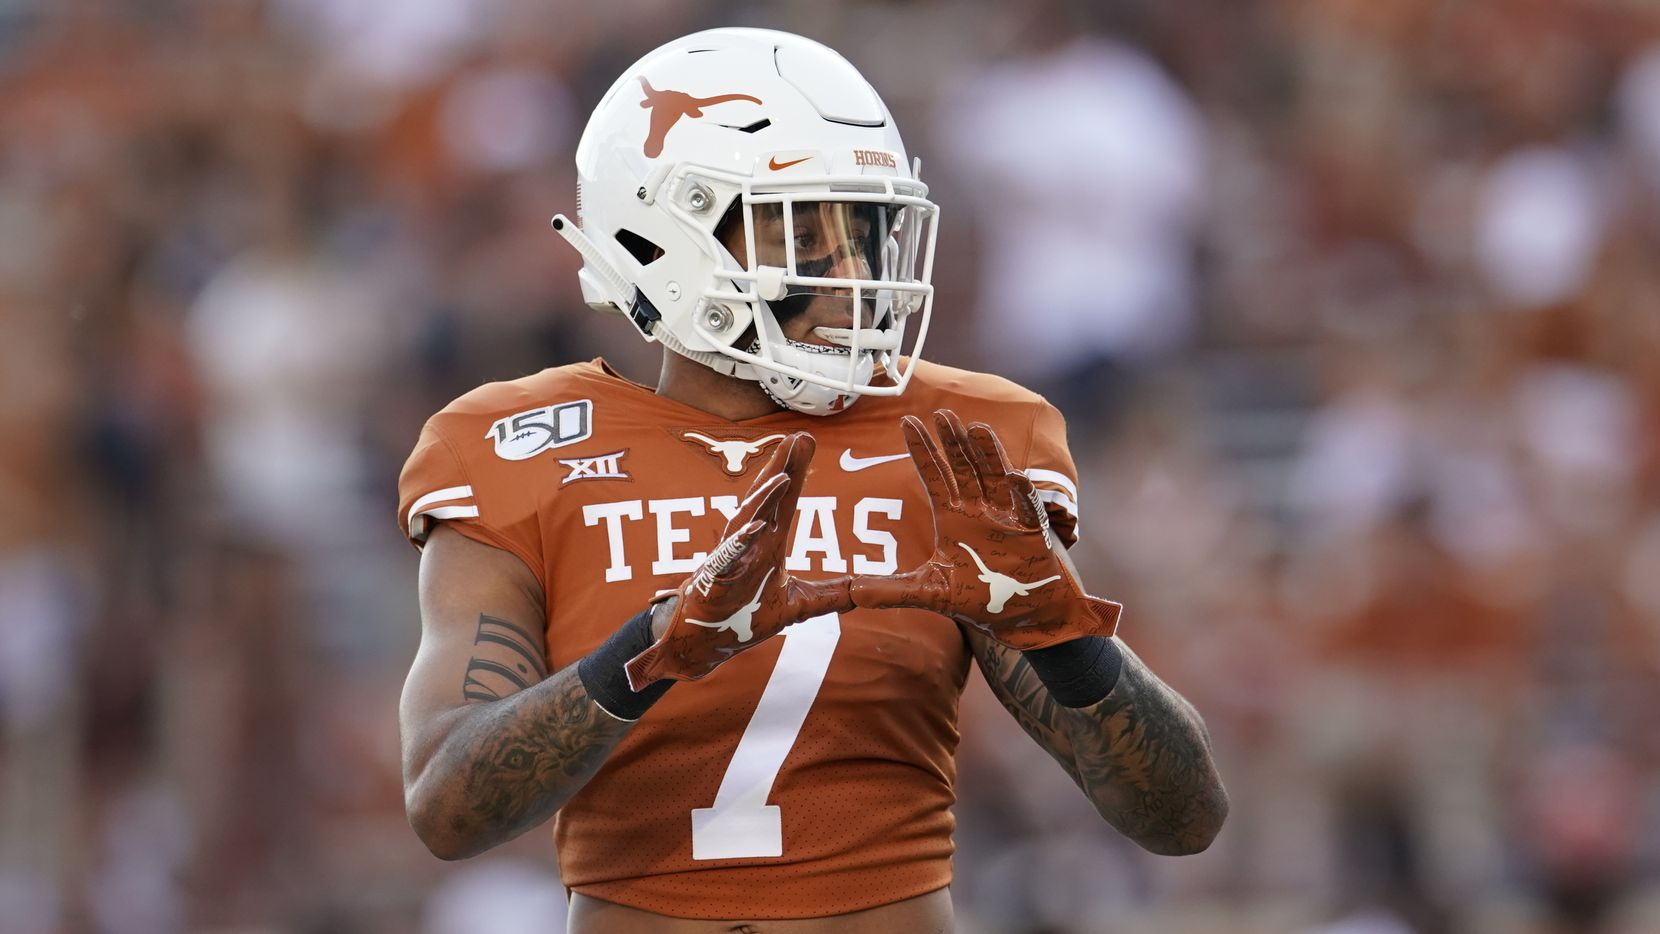 Texas's Caden Sterns (7) warms up before an NCAA college football game against Louisiana Tech in Austin, Texas, Saturday, Aug. 31, 2019.